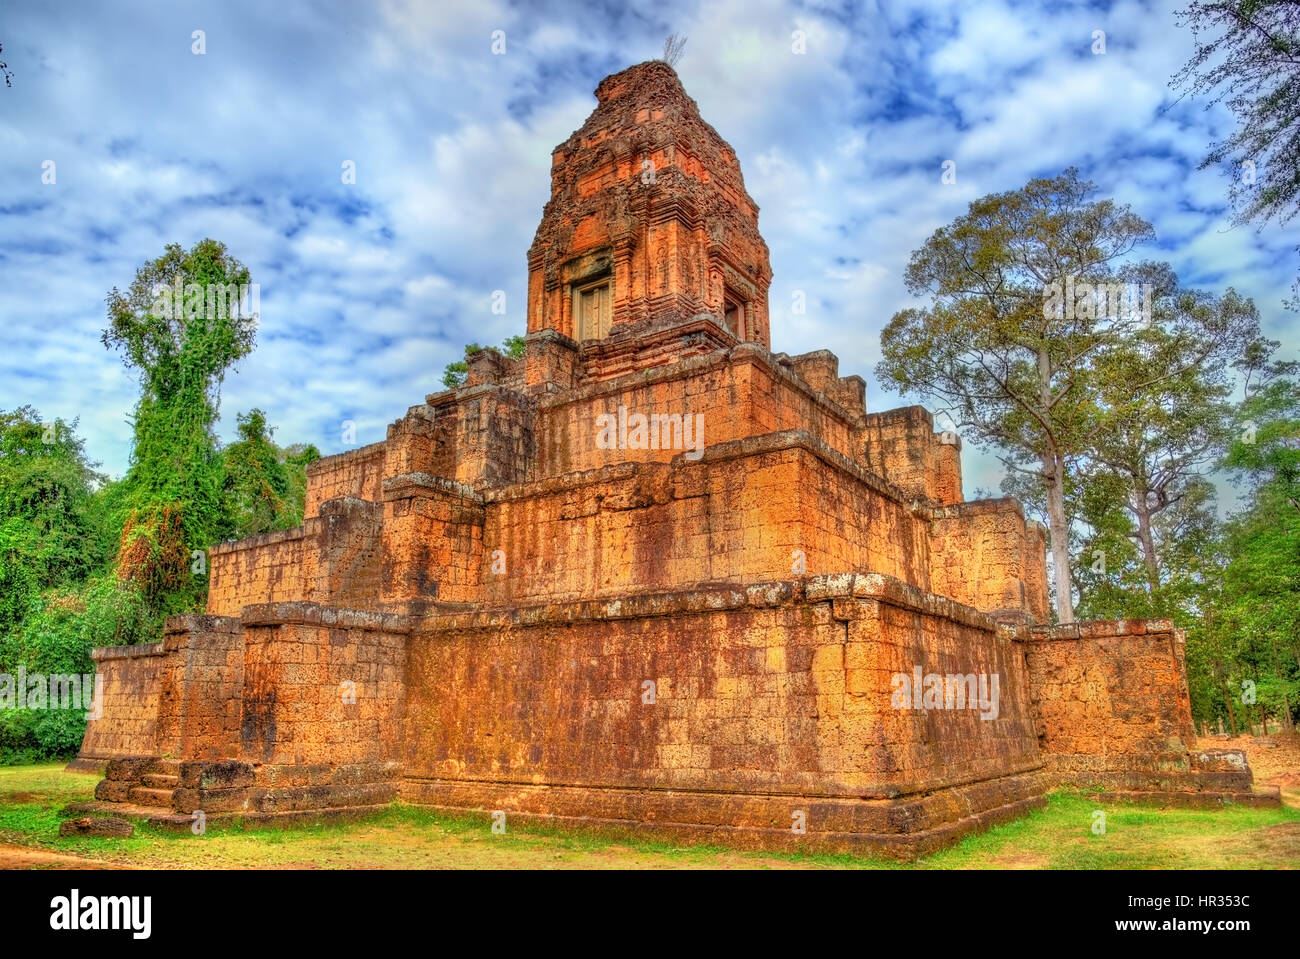 Baksei Chamkrong, a Hindu temple in the Angkor complex - Cambodia - Stock Image